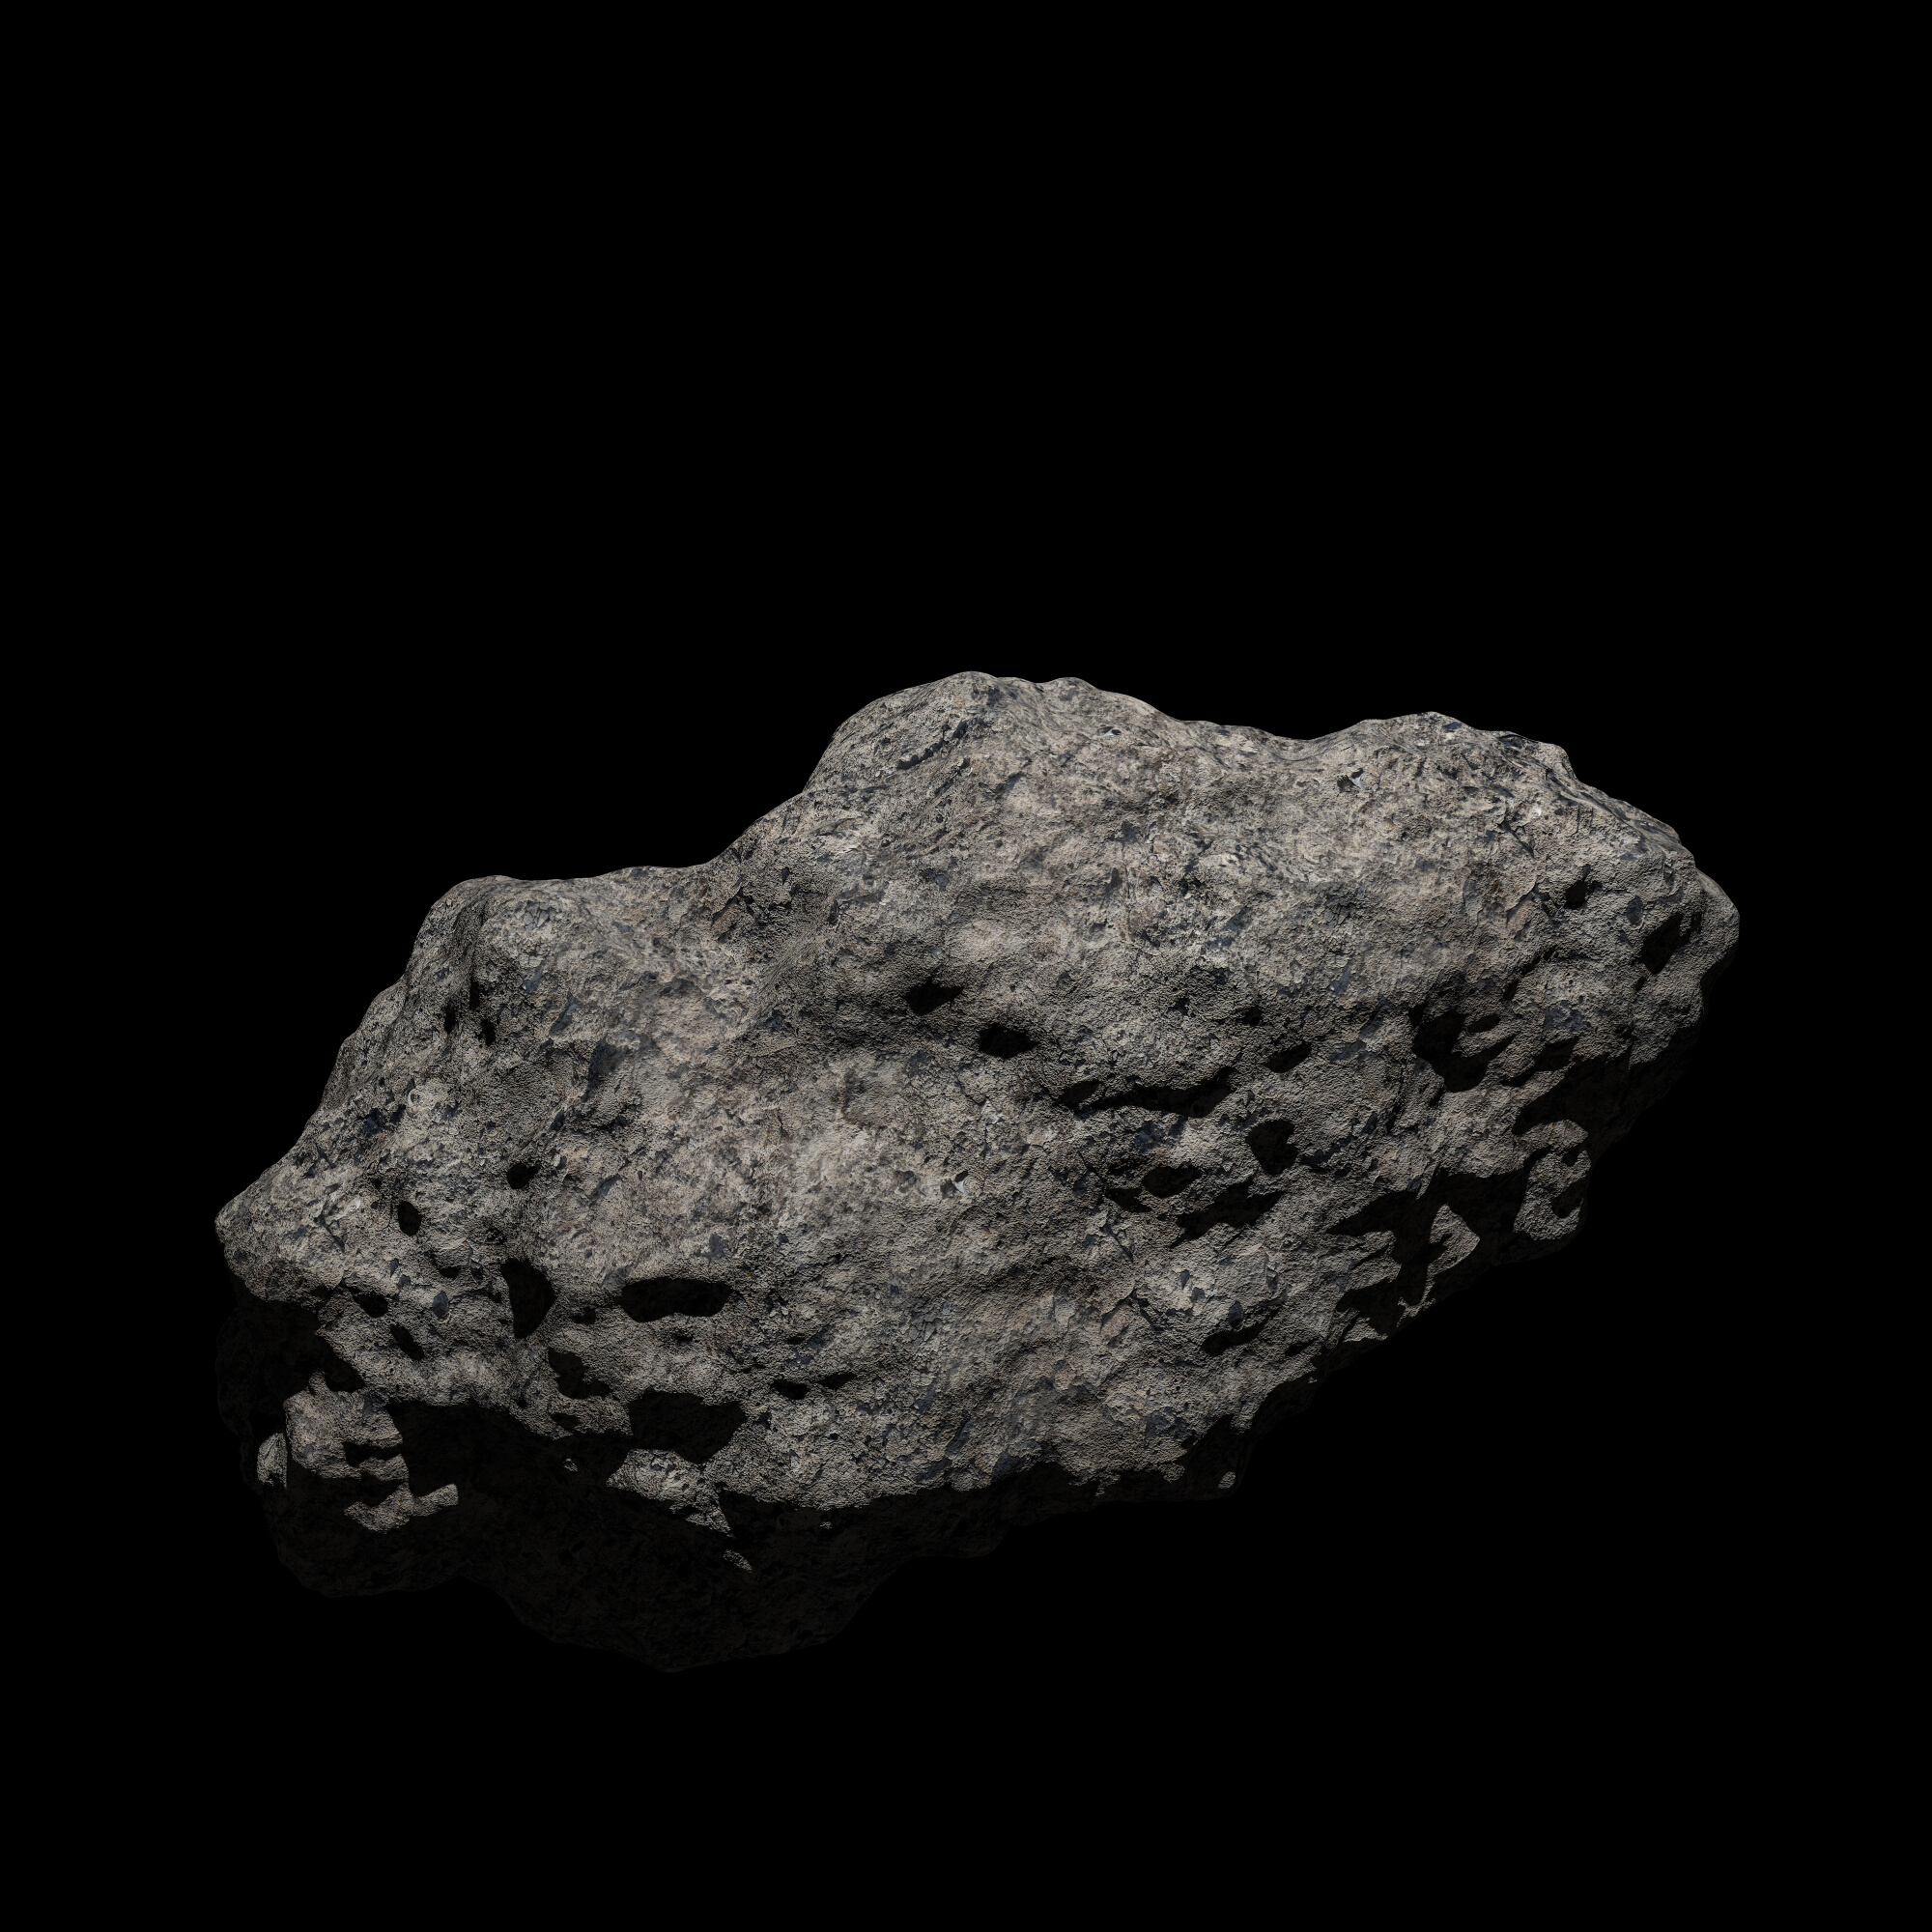 fantasy asteroid 2 3d model 3ds blend dae fbx obj 267190